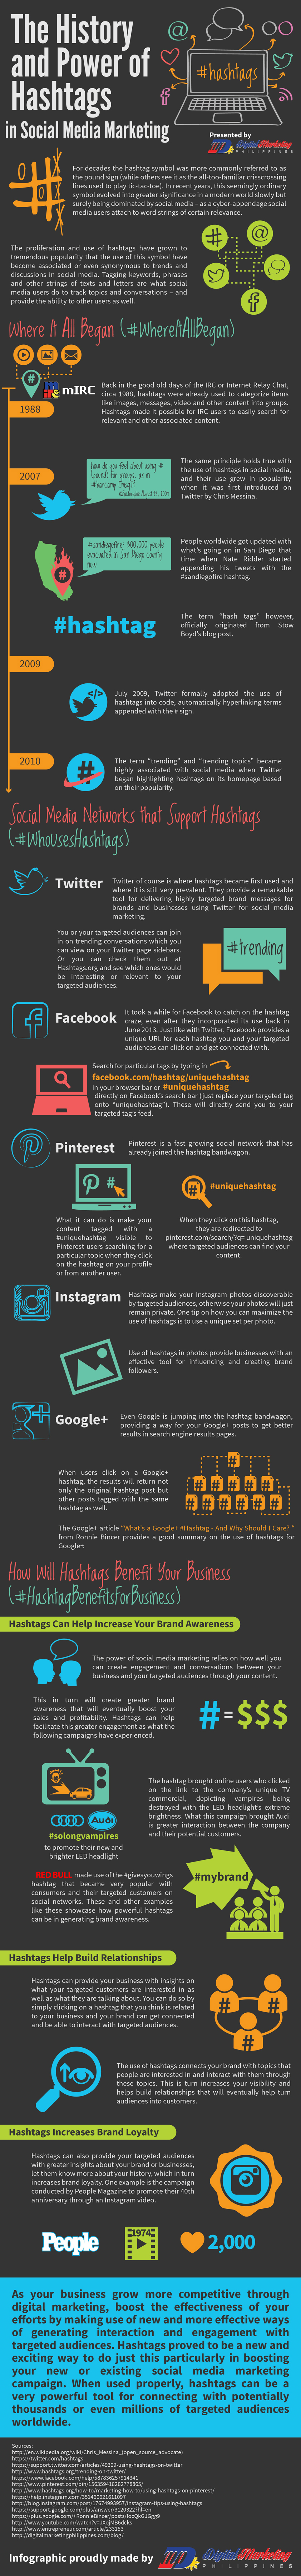 the-history-and-power-of-hashtags-in-social-media-marketing_549eb211b42f8